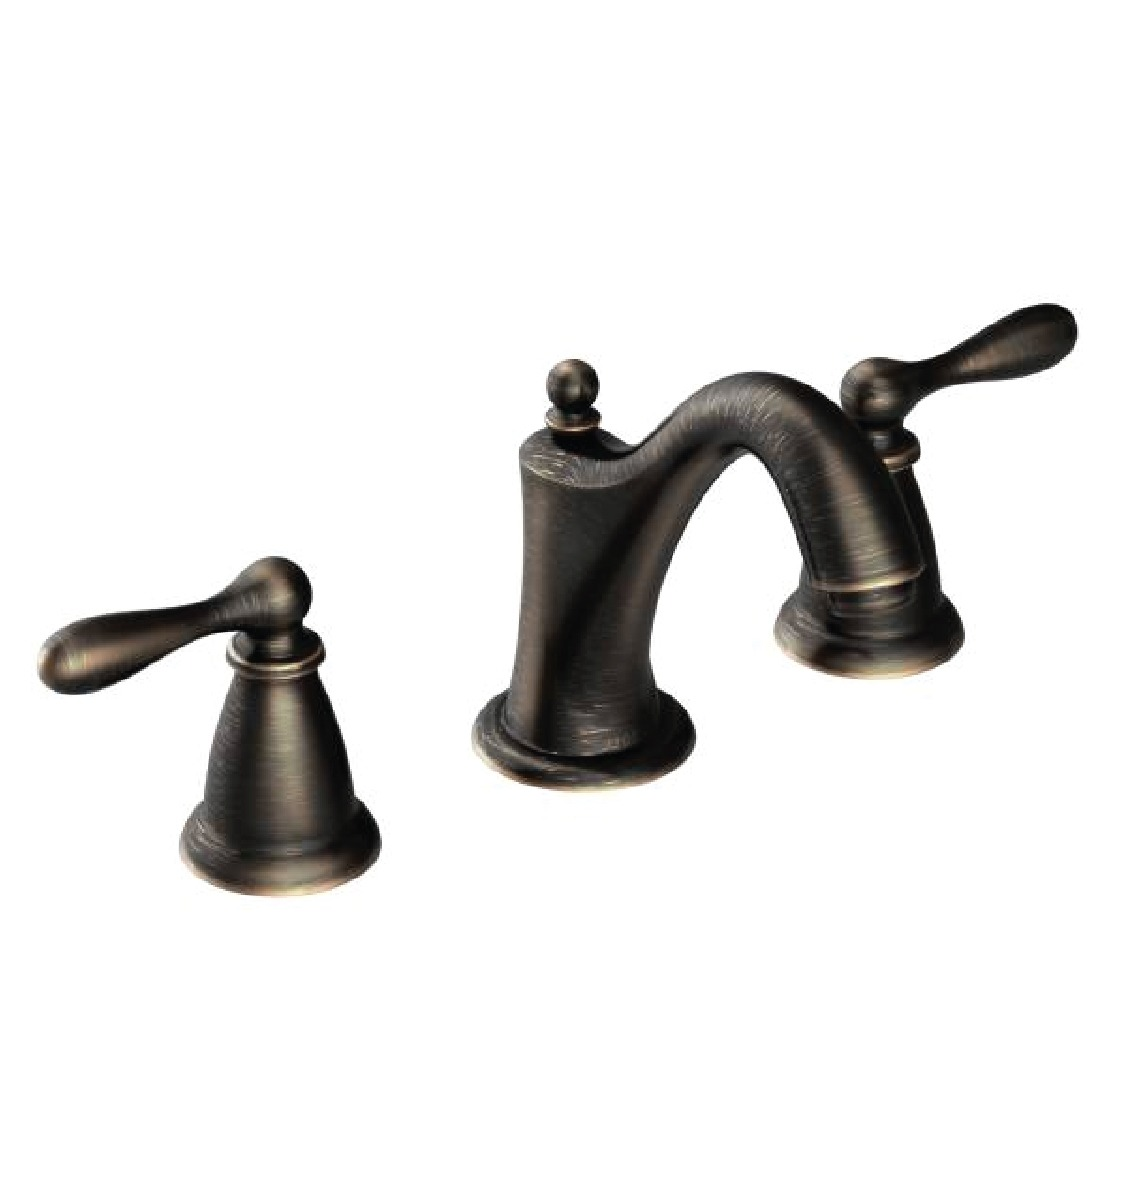 Bathroom Sink Faucets Bronze : ... Two-Handle High Arc Bathroom Faucet, Bronze Finish - Schillings